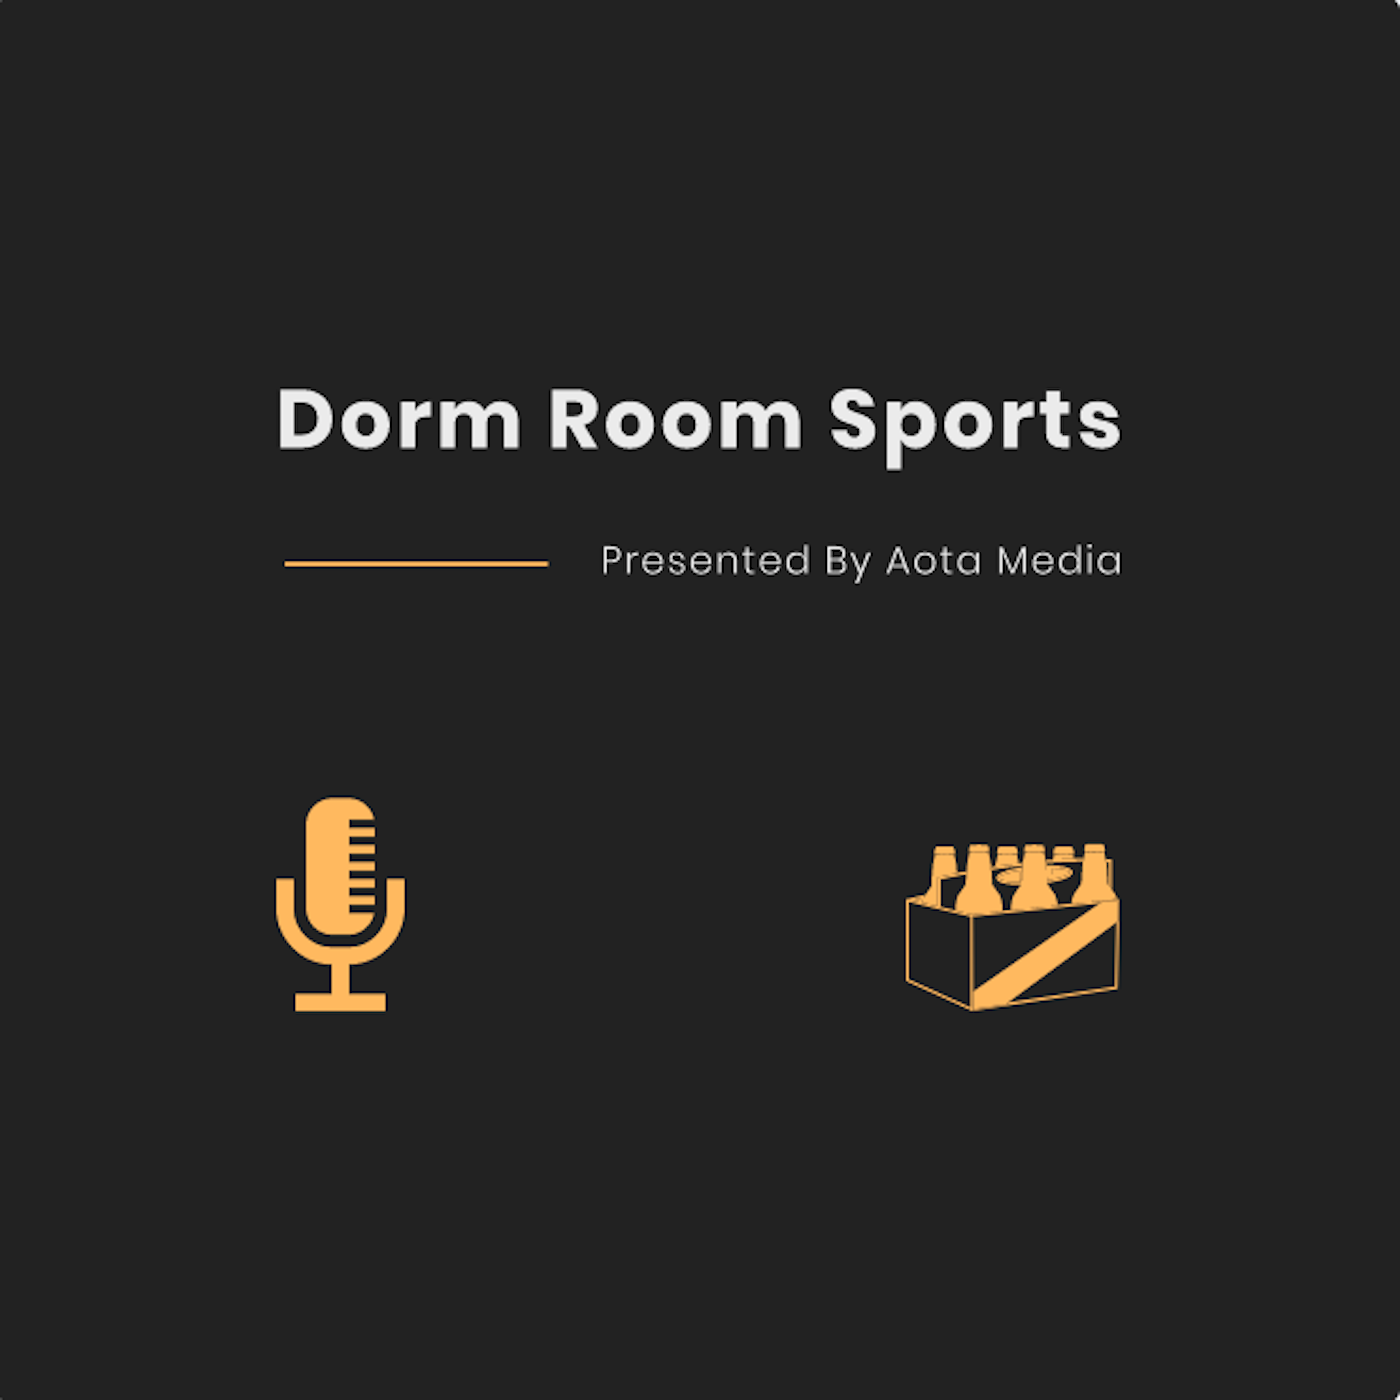 Show artwork for Dorm Room Sports